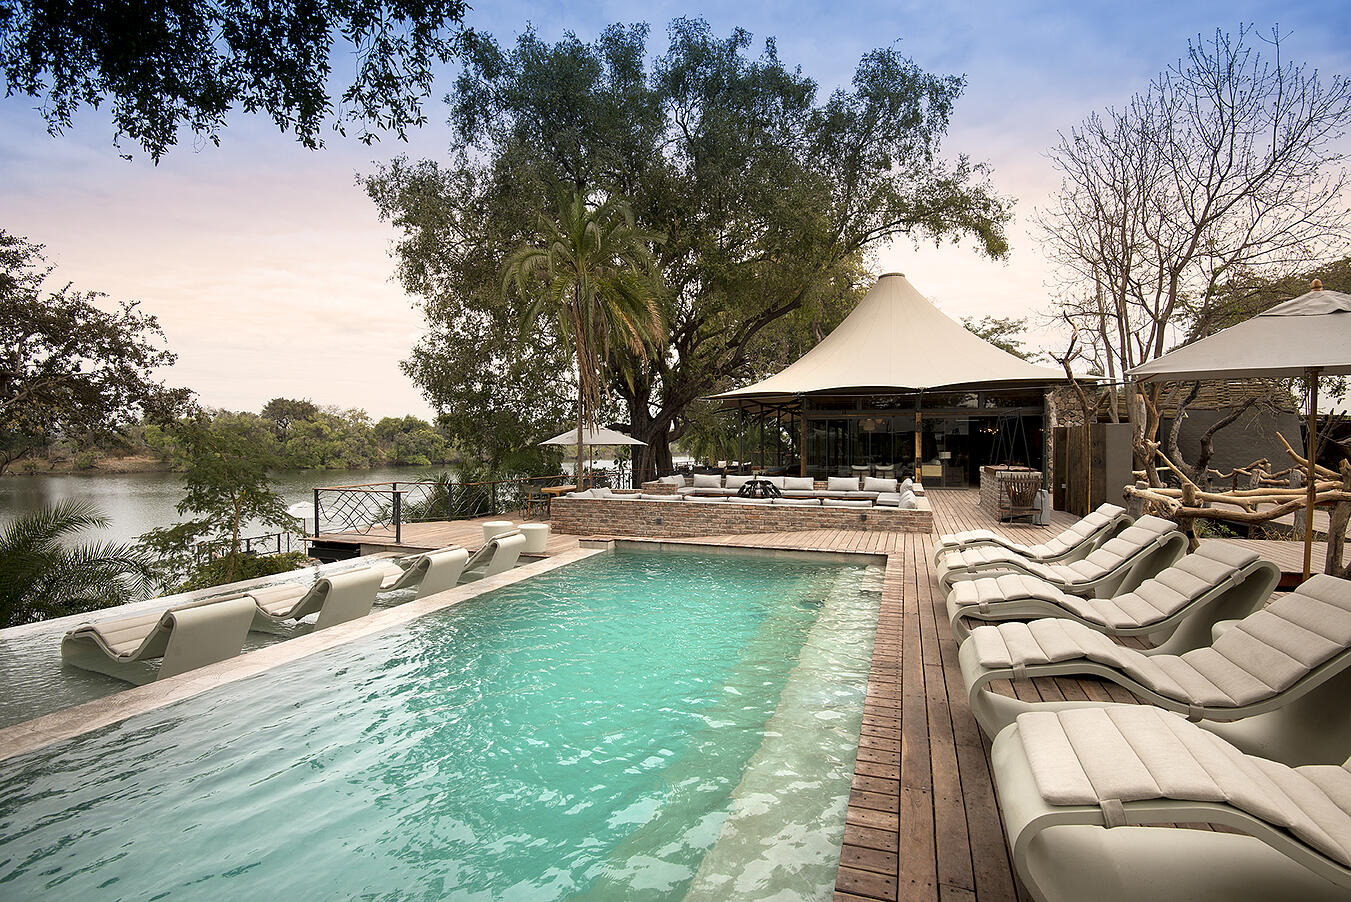 Thorntree River Lodge Livingstone Zambia African Bush Camps Luxury Safari Lodge (100) Pool Area